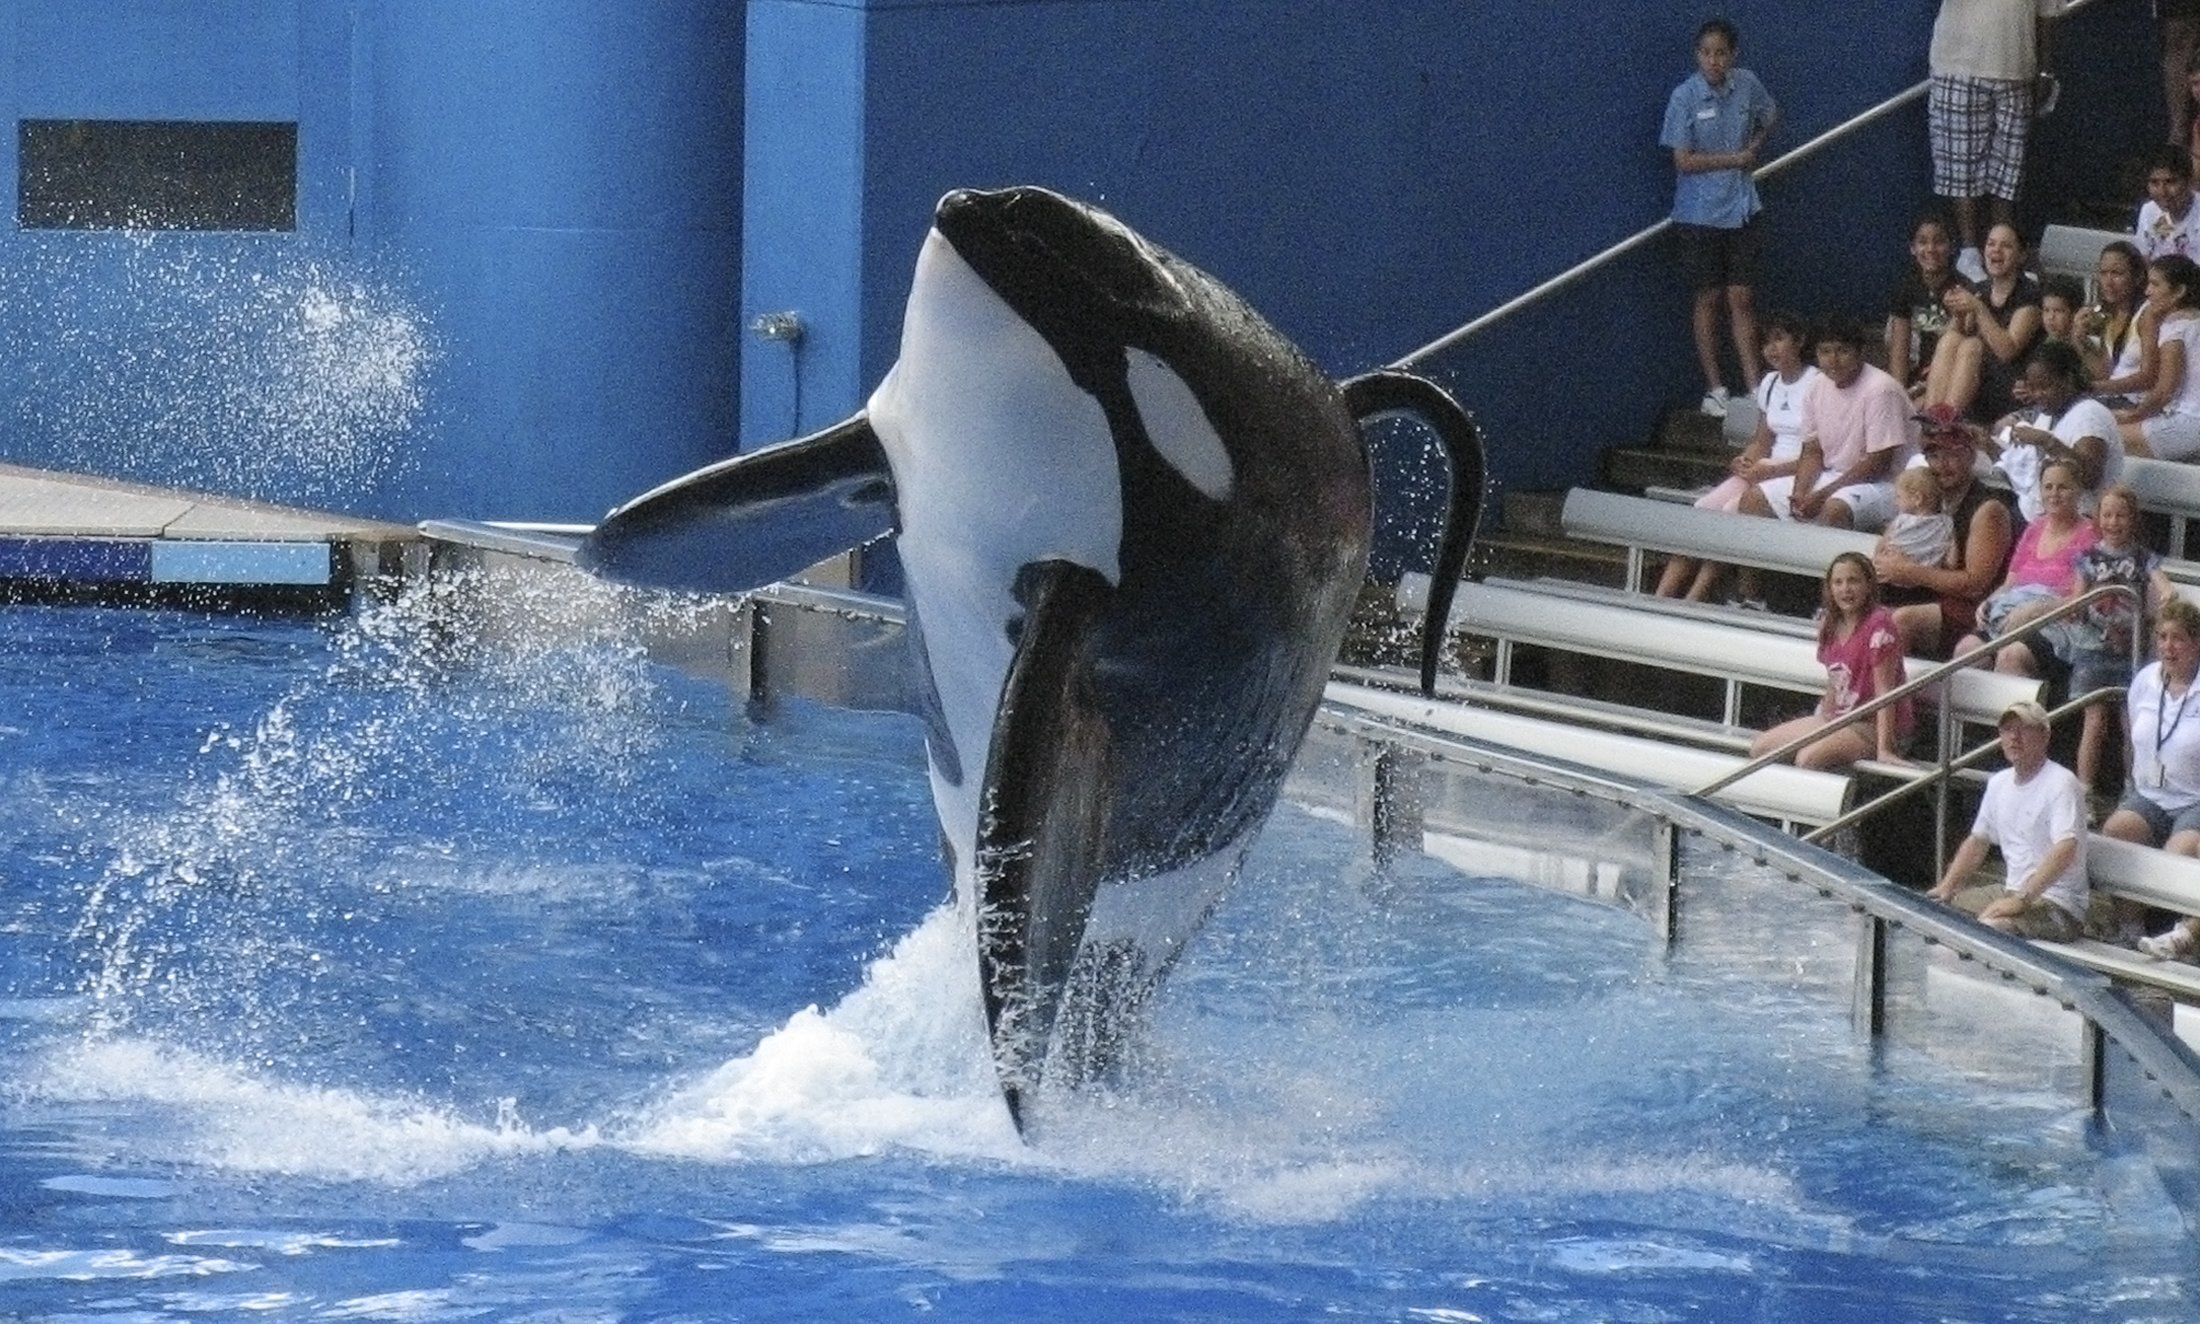 Tilikum, a killer whale at SeaWorld amusement park in Orlando, Florida wasfeatured in the influential 2013 documentary